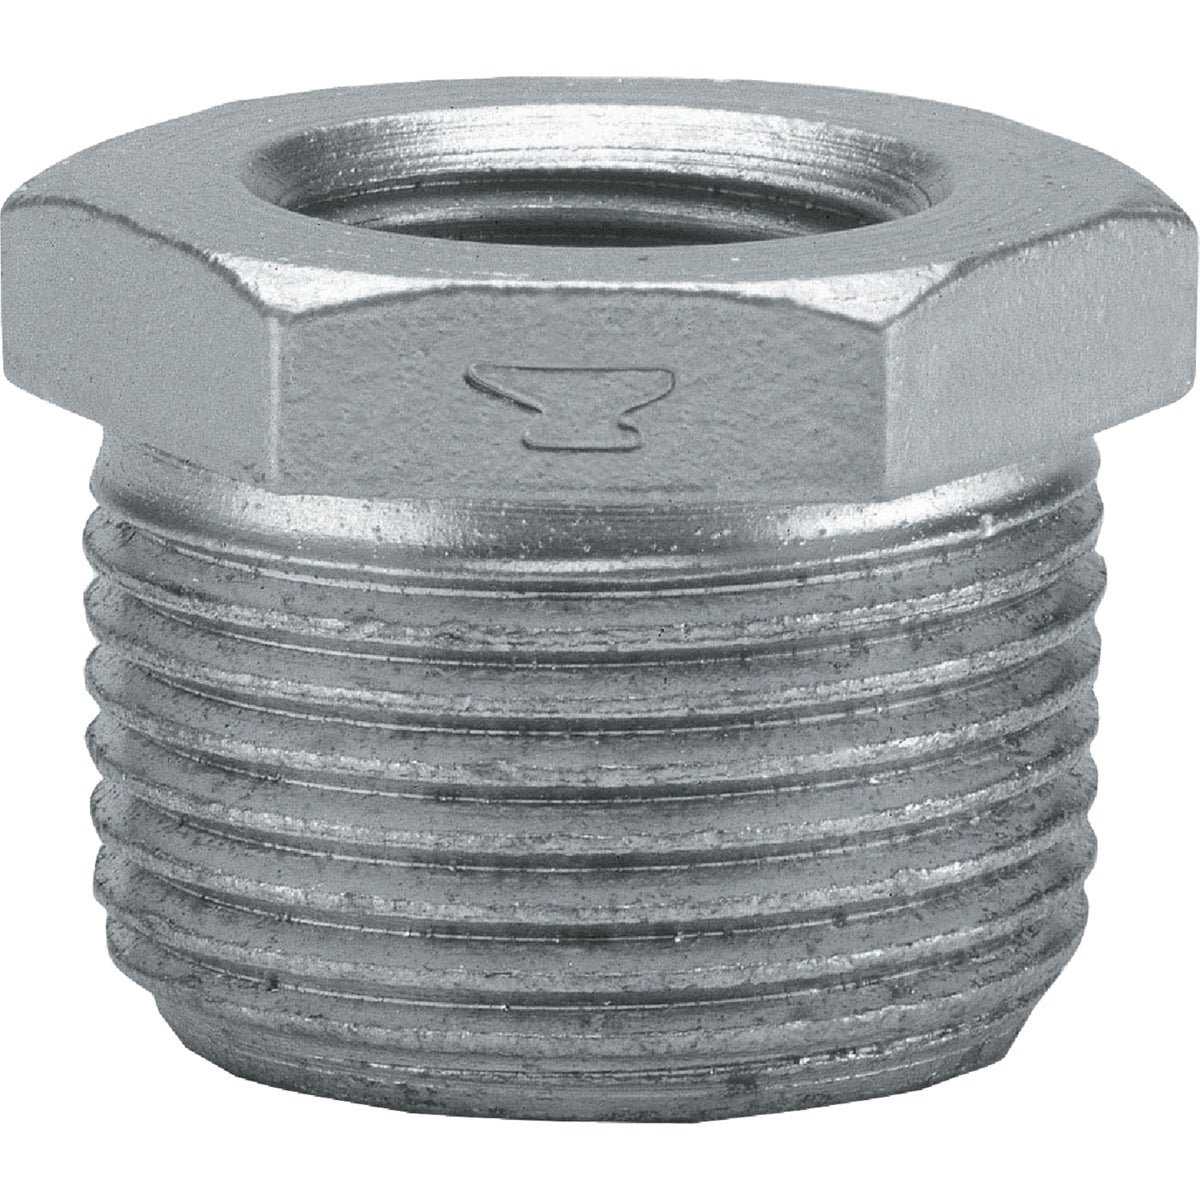 1/2X1/4 GALV BUSHING - 8700130506 by Anvil International